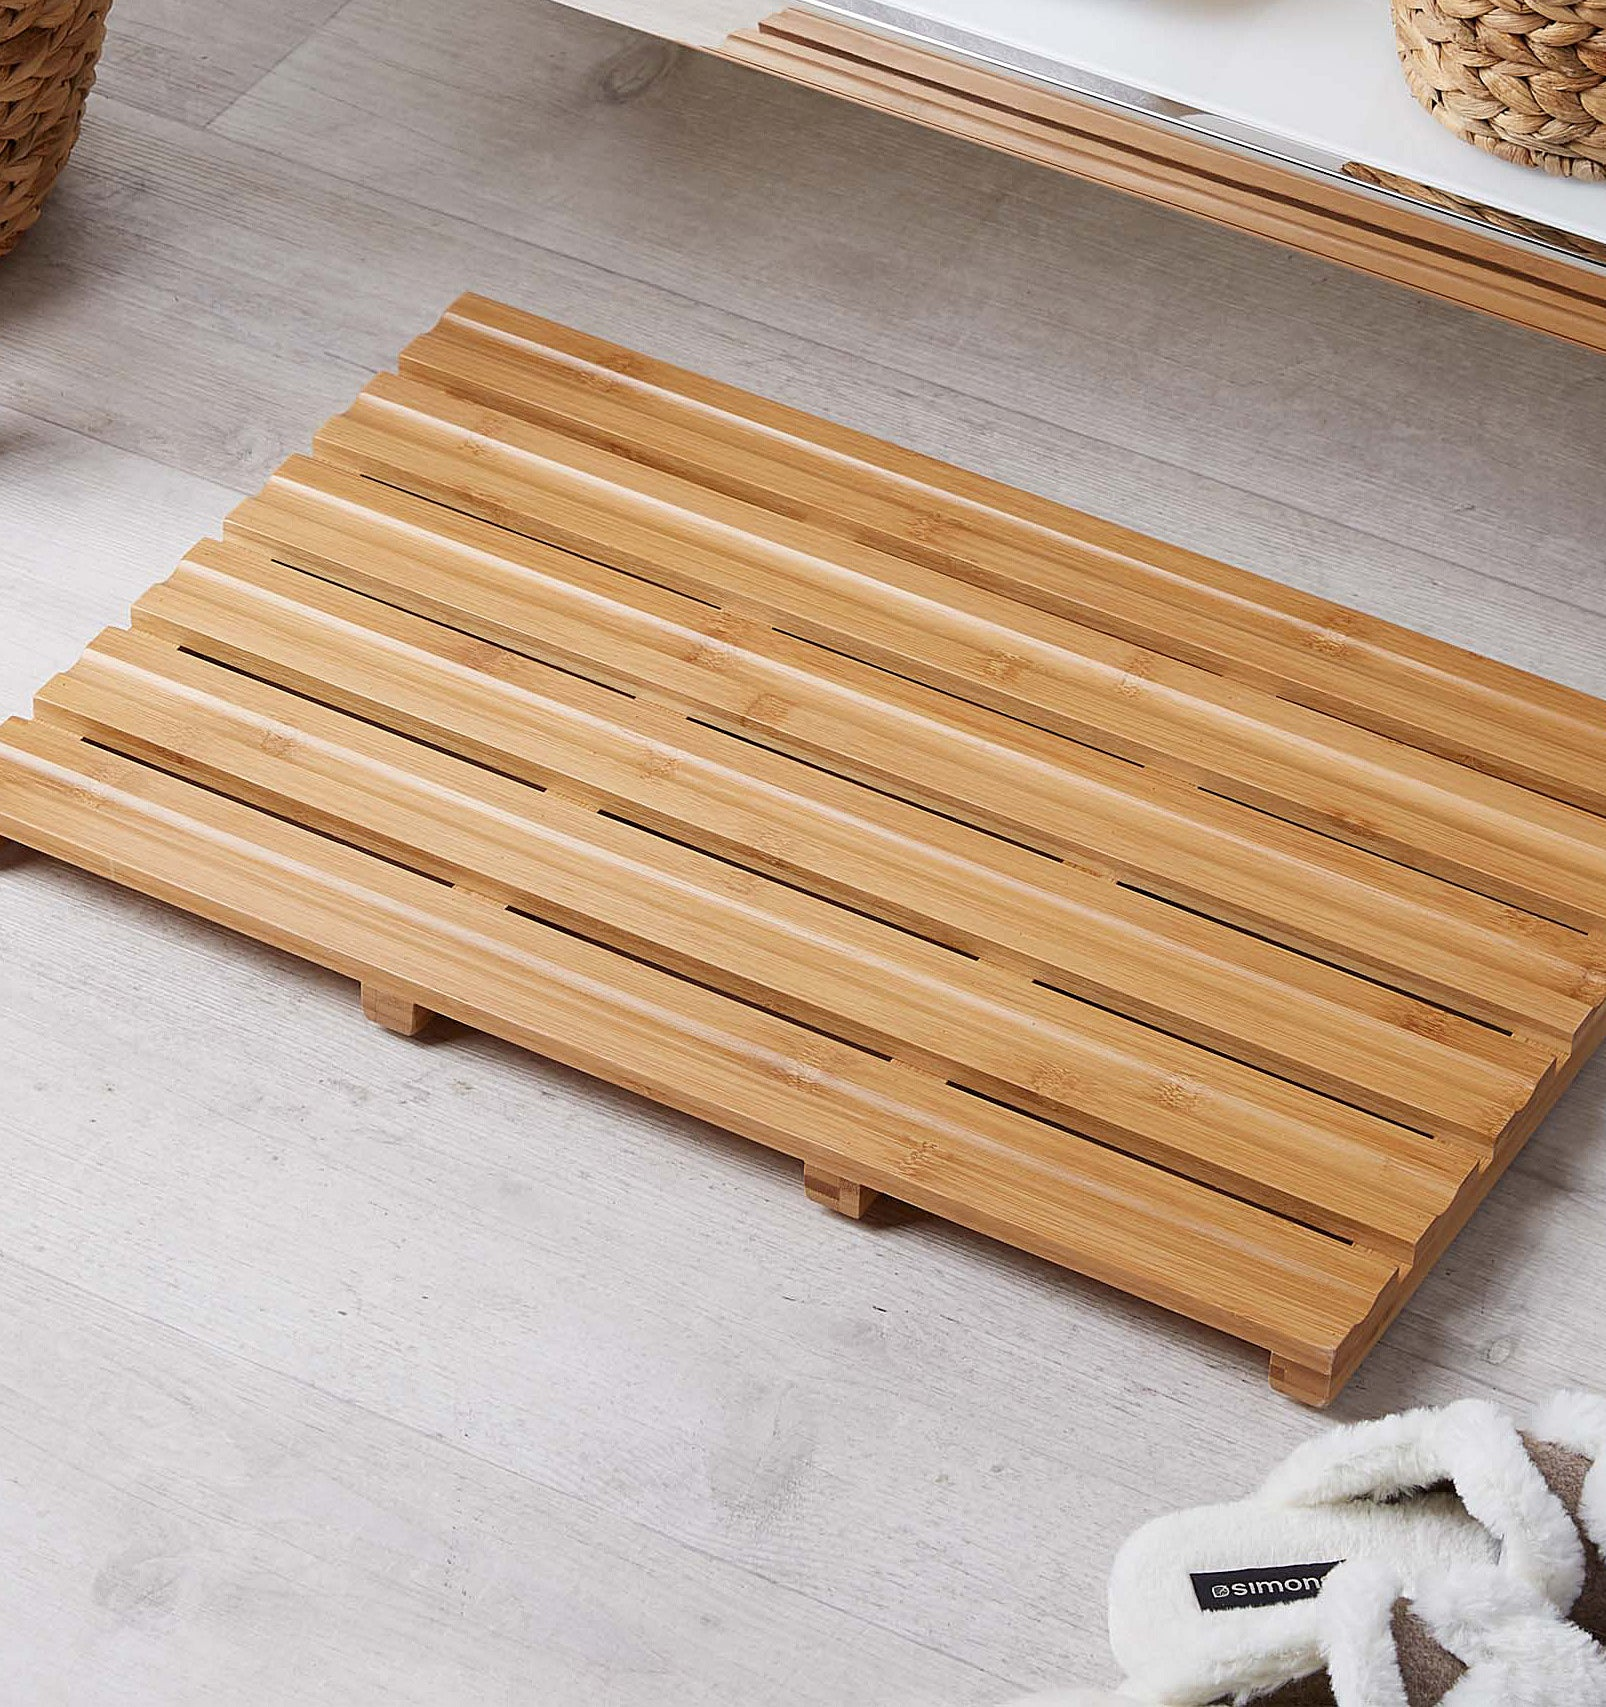 A slatted wooden bath mat in front of a bathroom sink